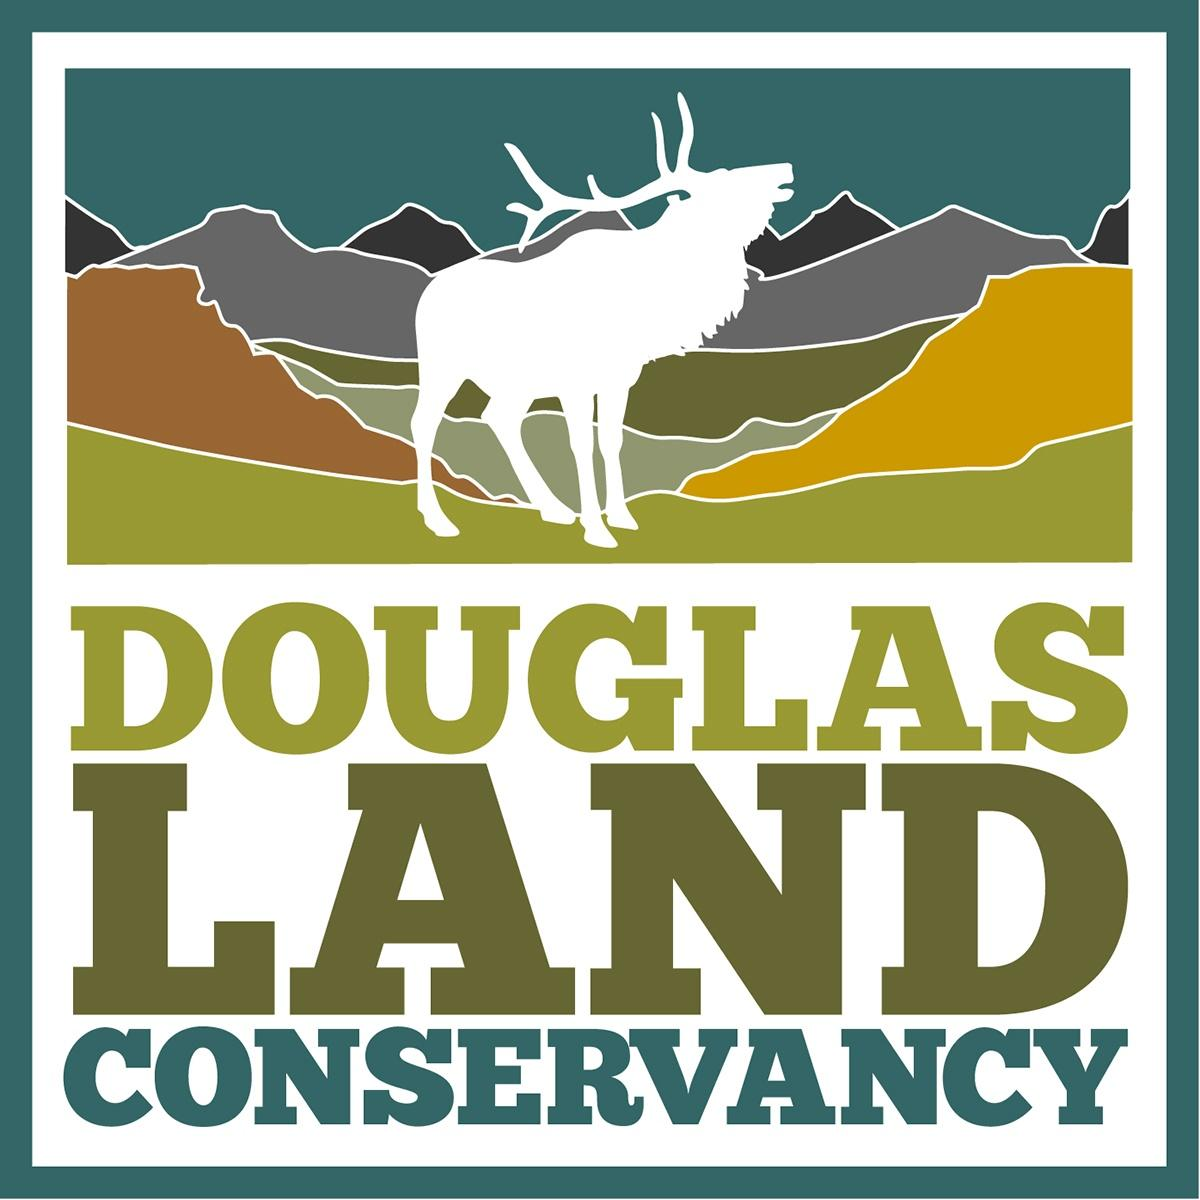 Douglas County Land Conservancy logo